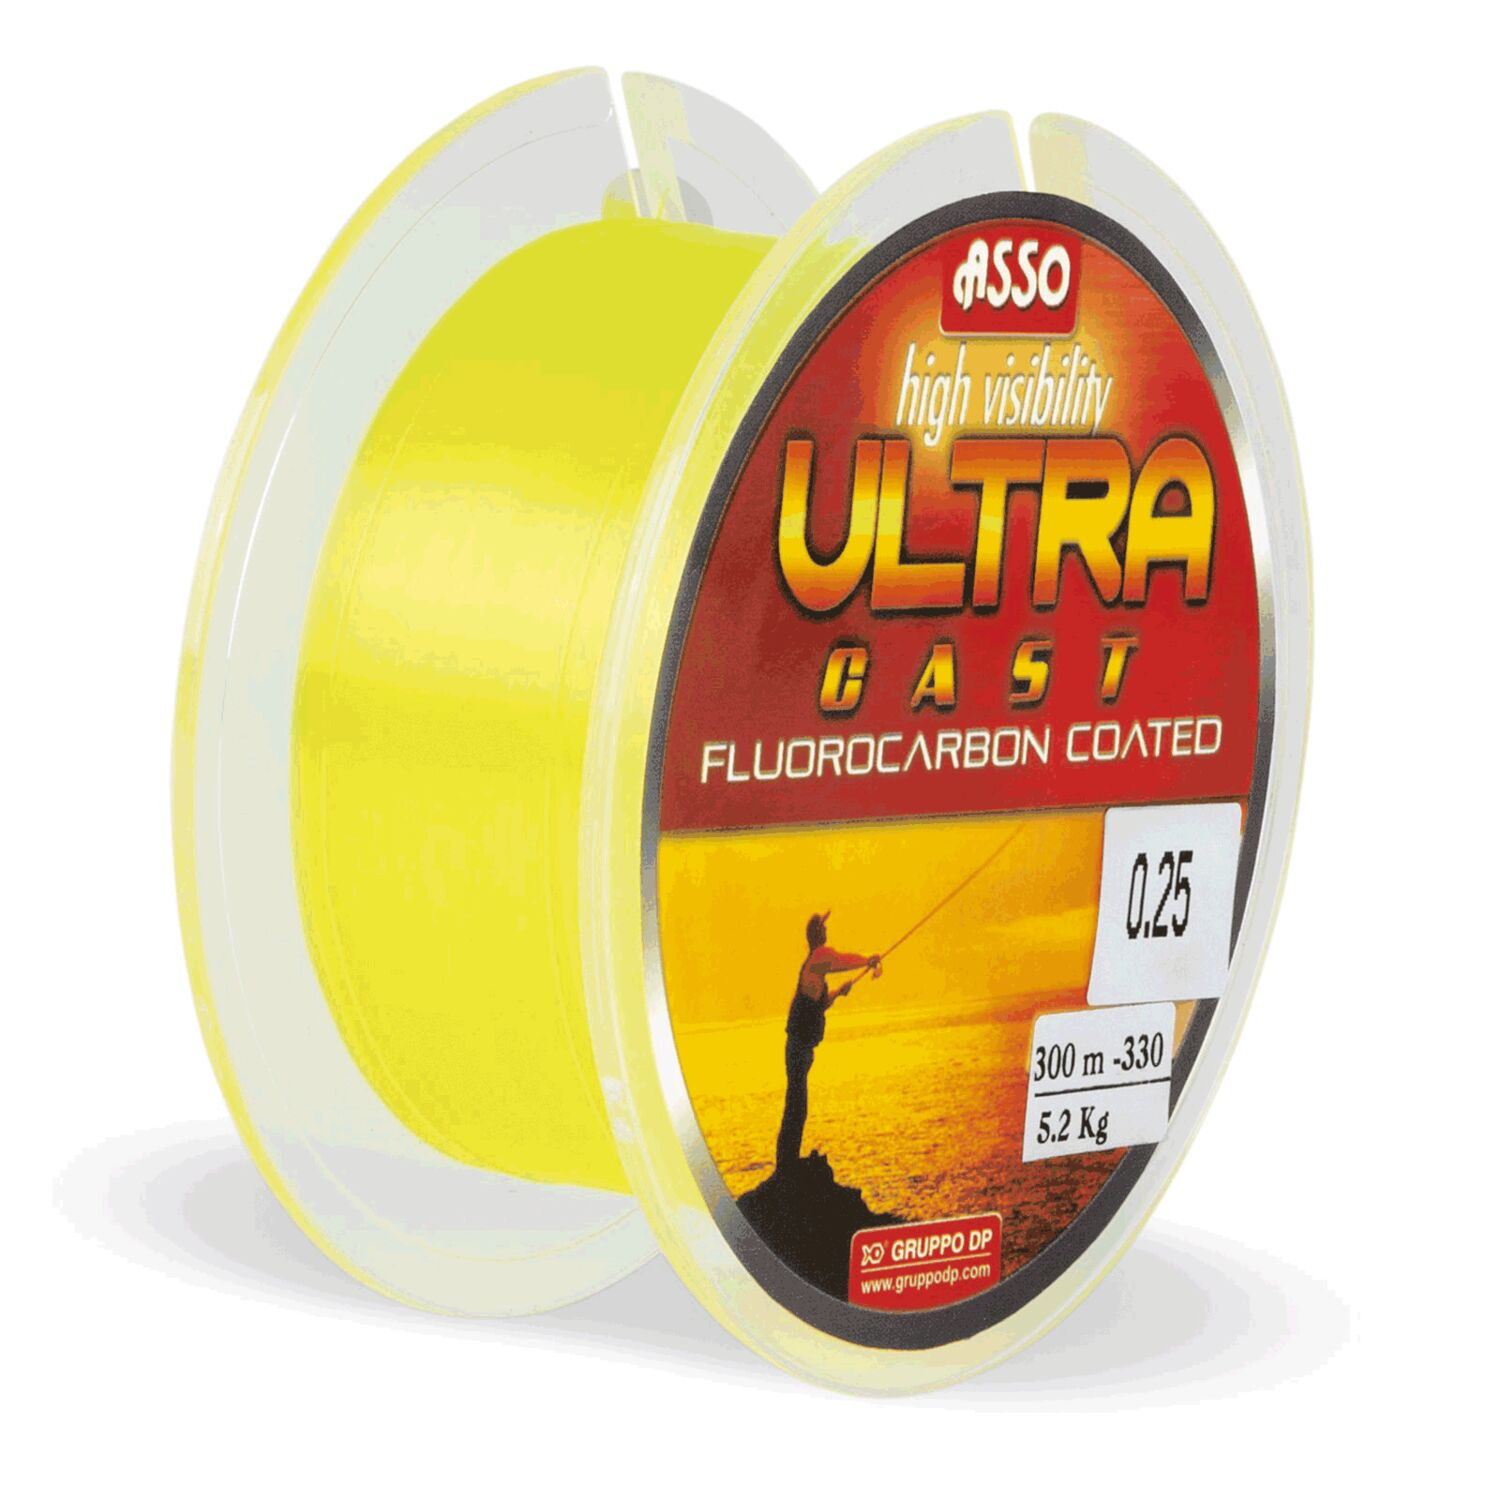 FILO ASSO ULTRA CAST GIALLO 0.32 MM 1000 MT FLUOROCARBON COATED SURFCASTING